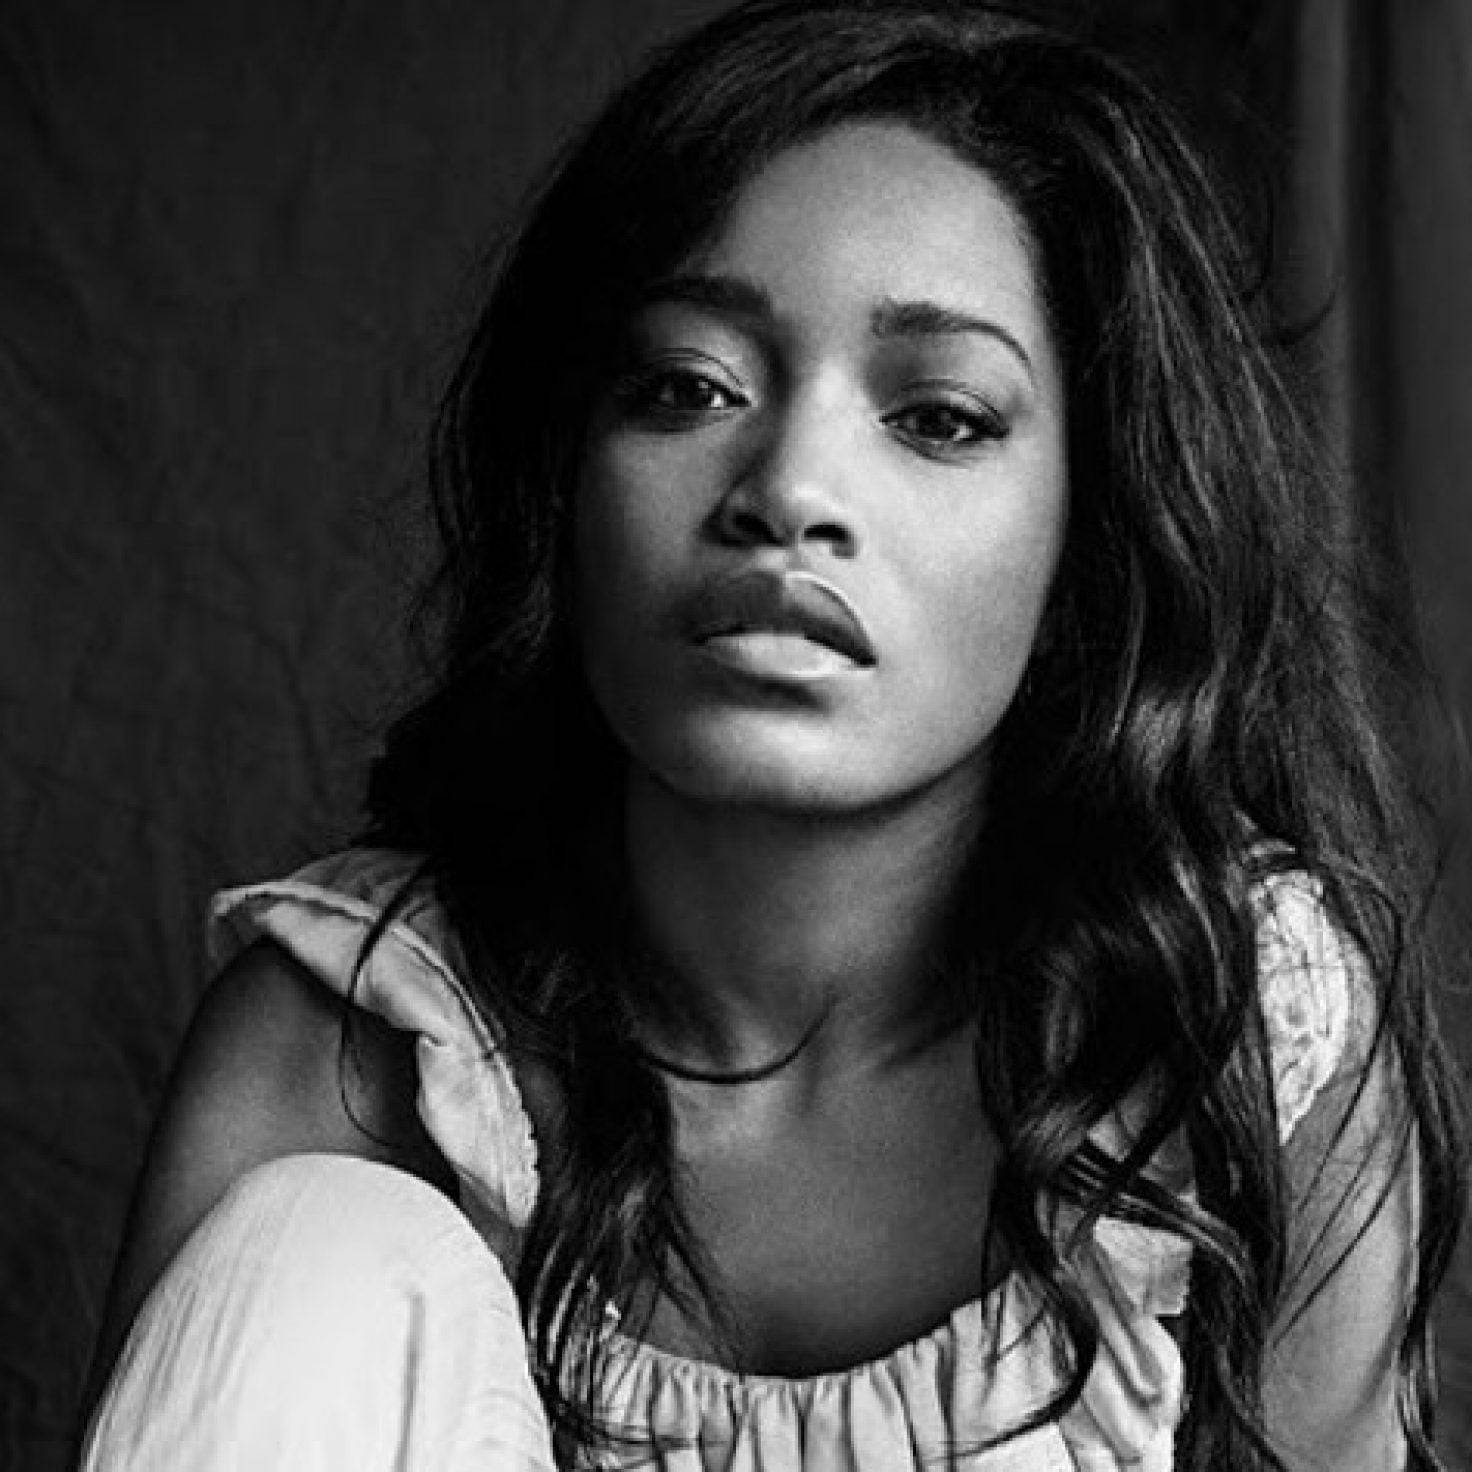 These Celebrities Are Stunning In Black And White Photos For The #WomenSupportingWomen Challenge